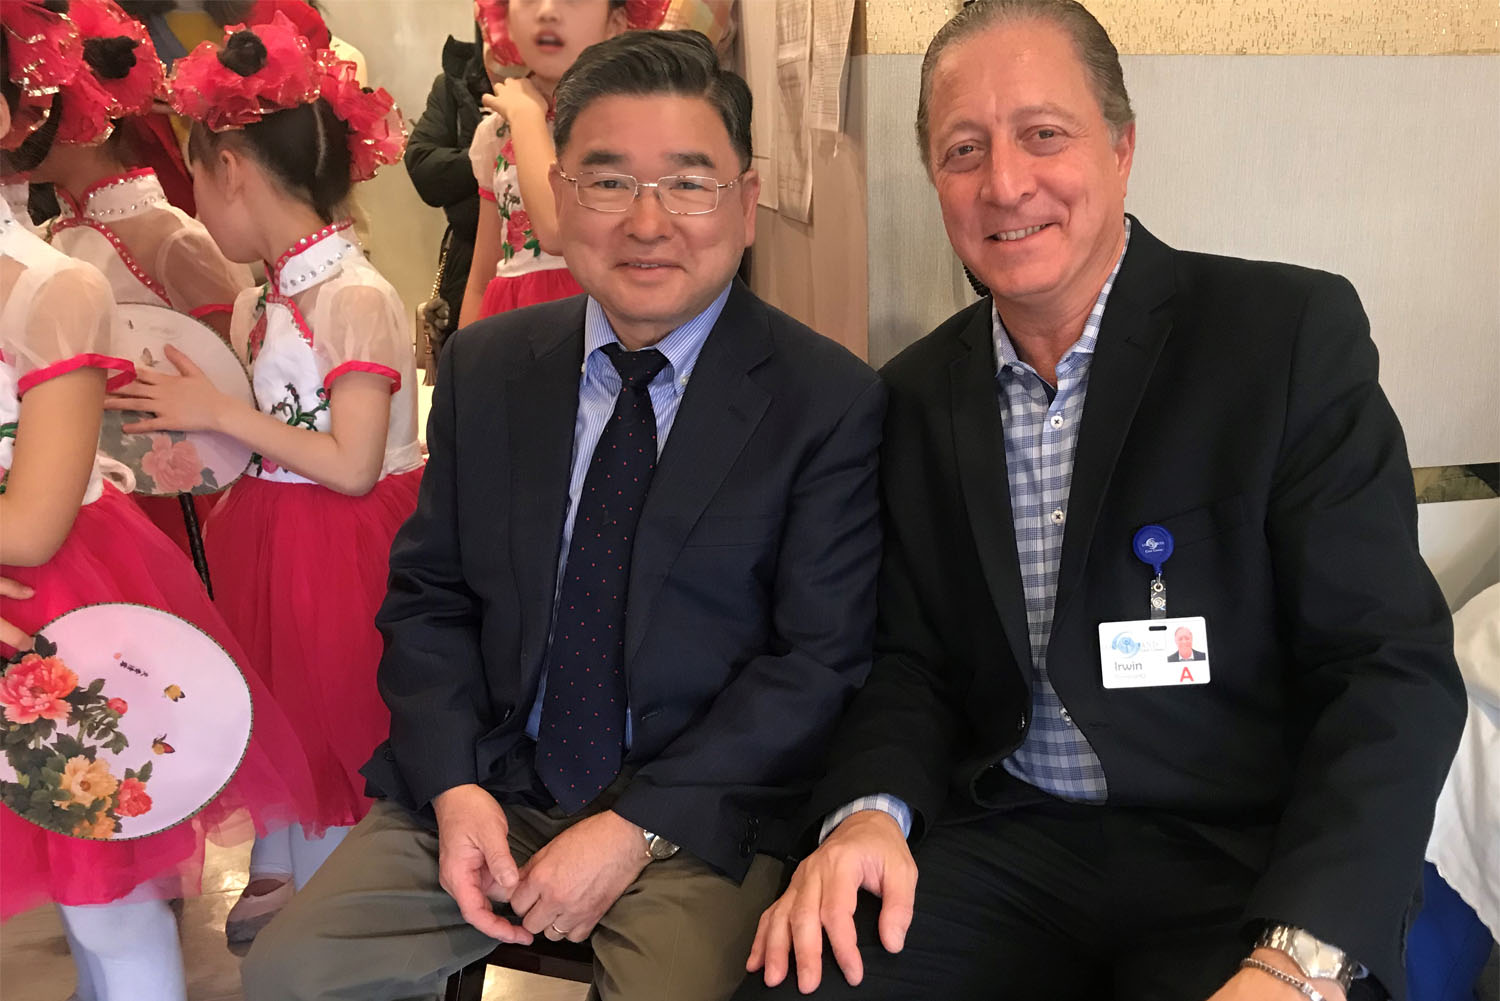 Councilman Peter Koo and LICC's Administrator Irwin Pomerantz at the Chinese New Year Celebration at LICC